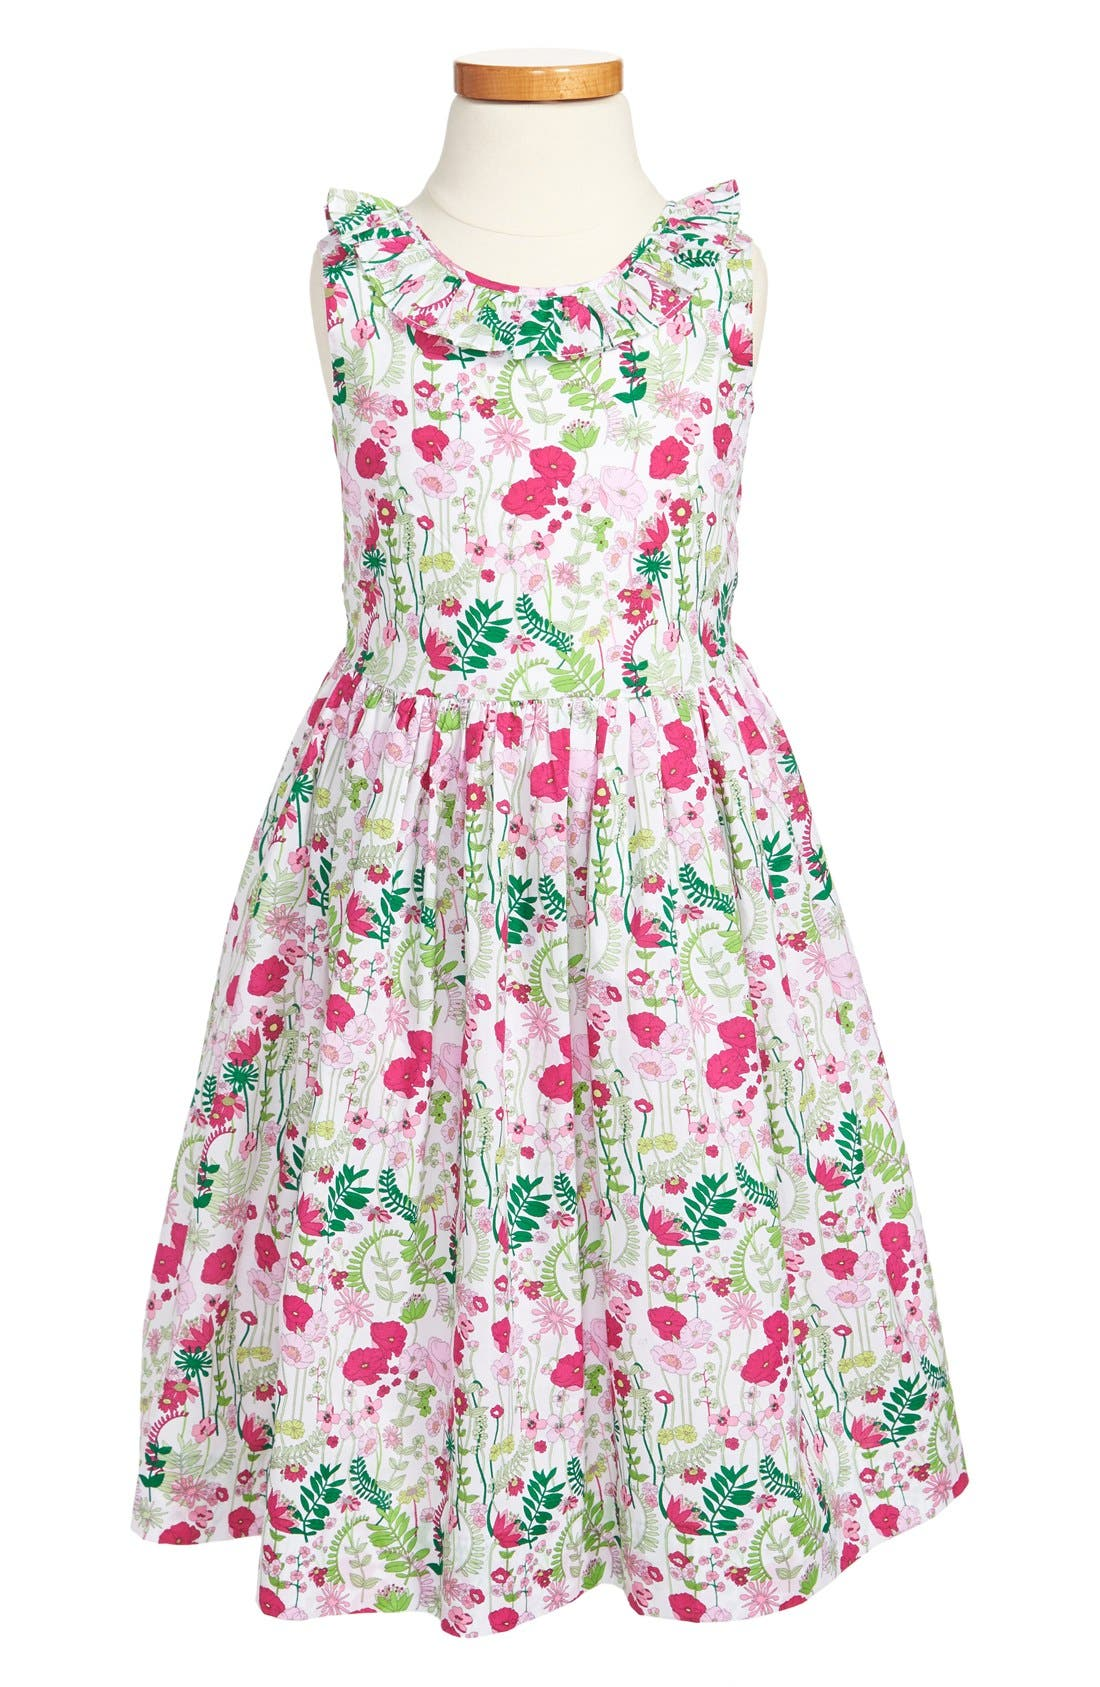 Main Image - Oscar de la Renta Ruffle Collar Dress (Little Girls & Big Girls)